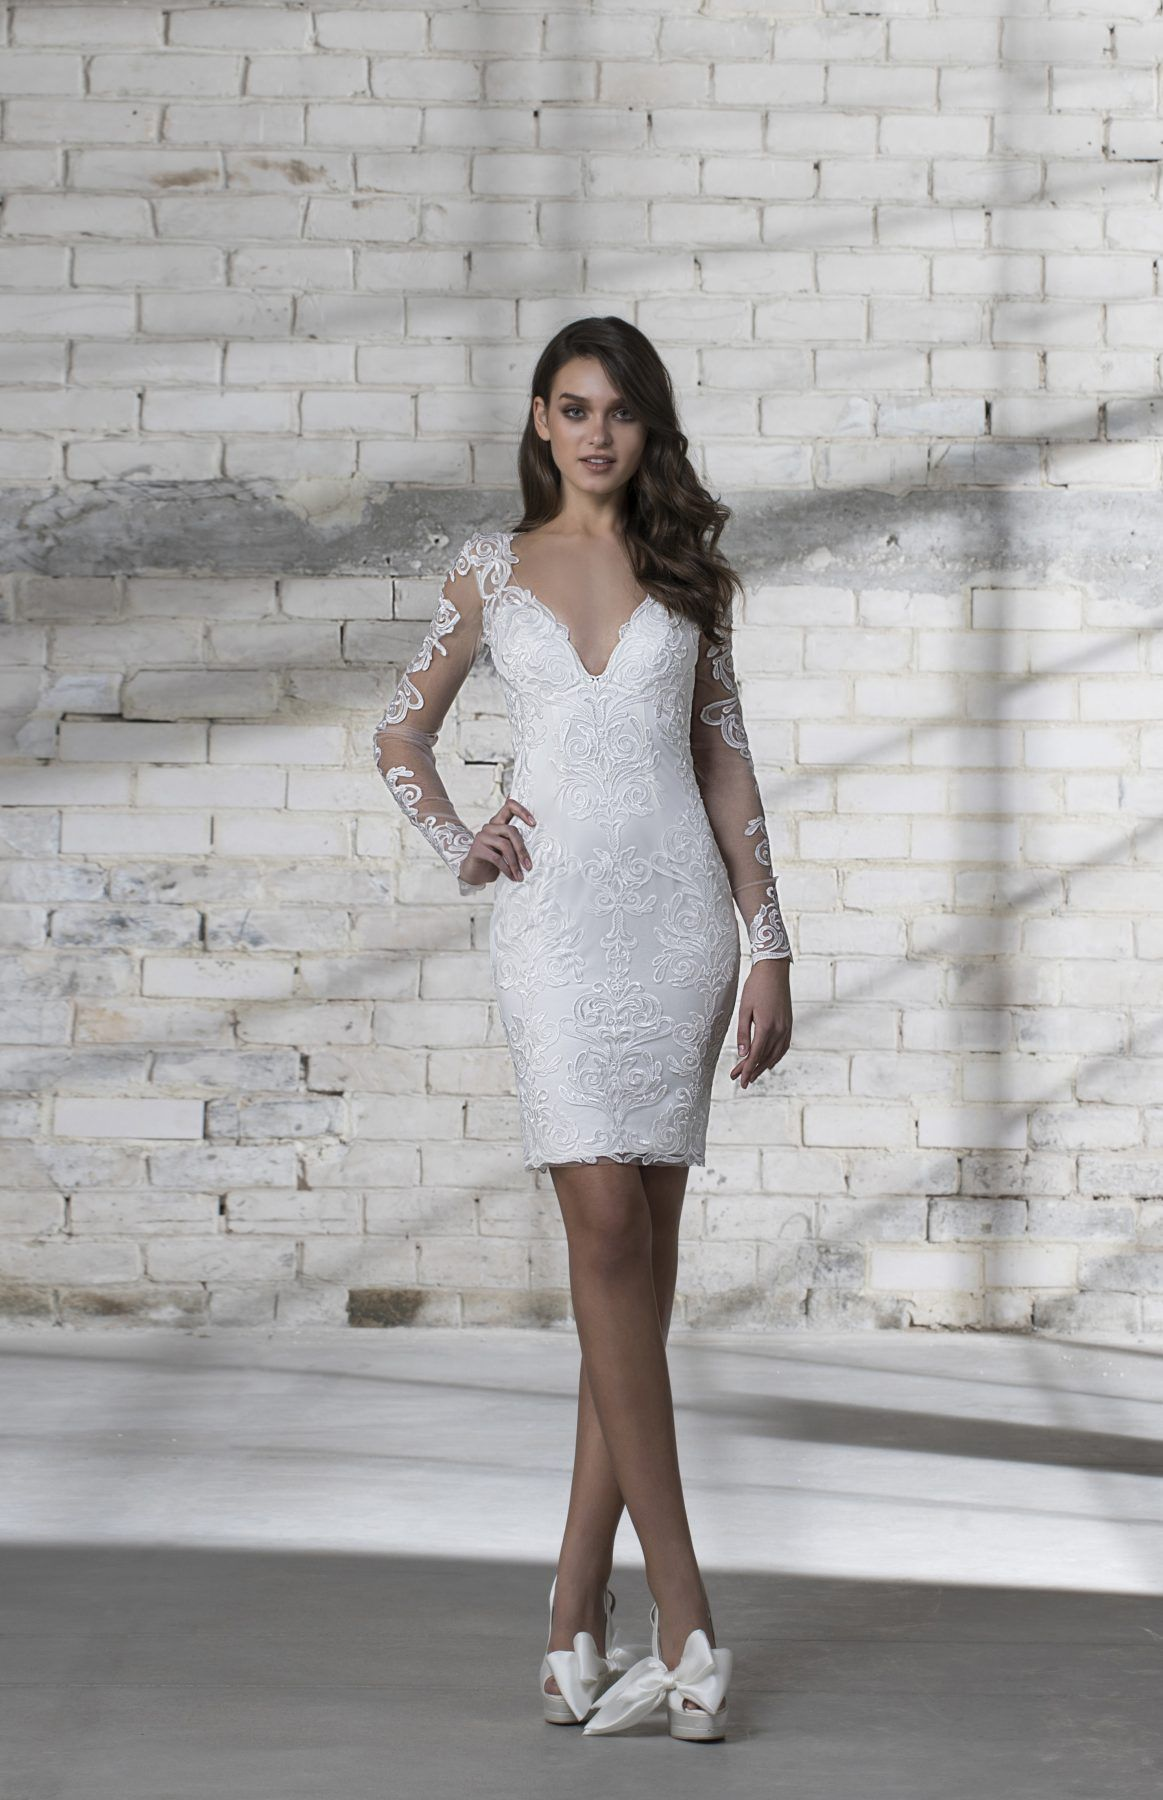 63 Cocktail Length Gowns Ideas In 2021 Wedding Dresses Dresses Kleinfeld Bridal